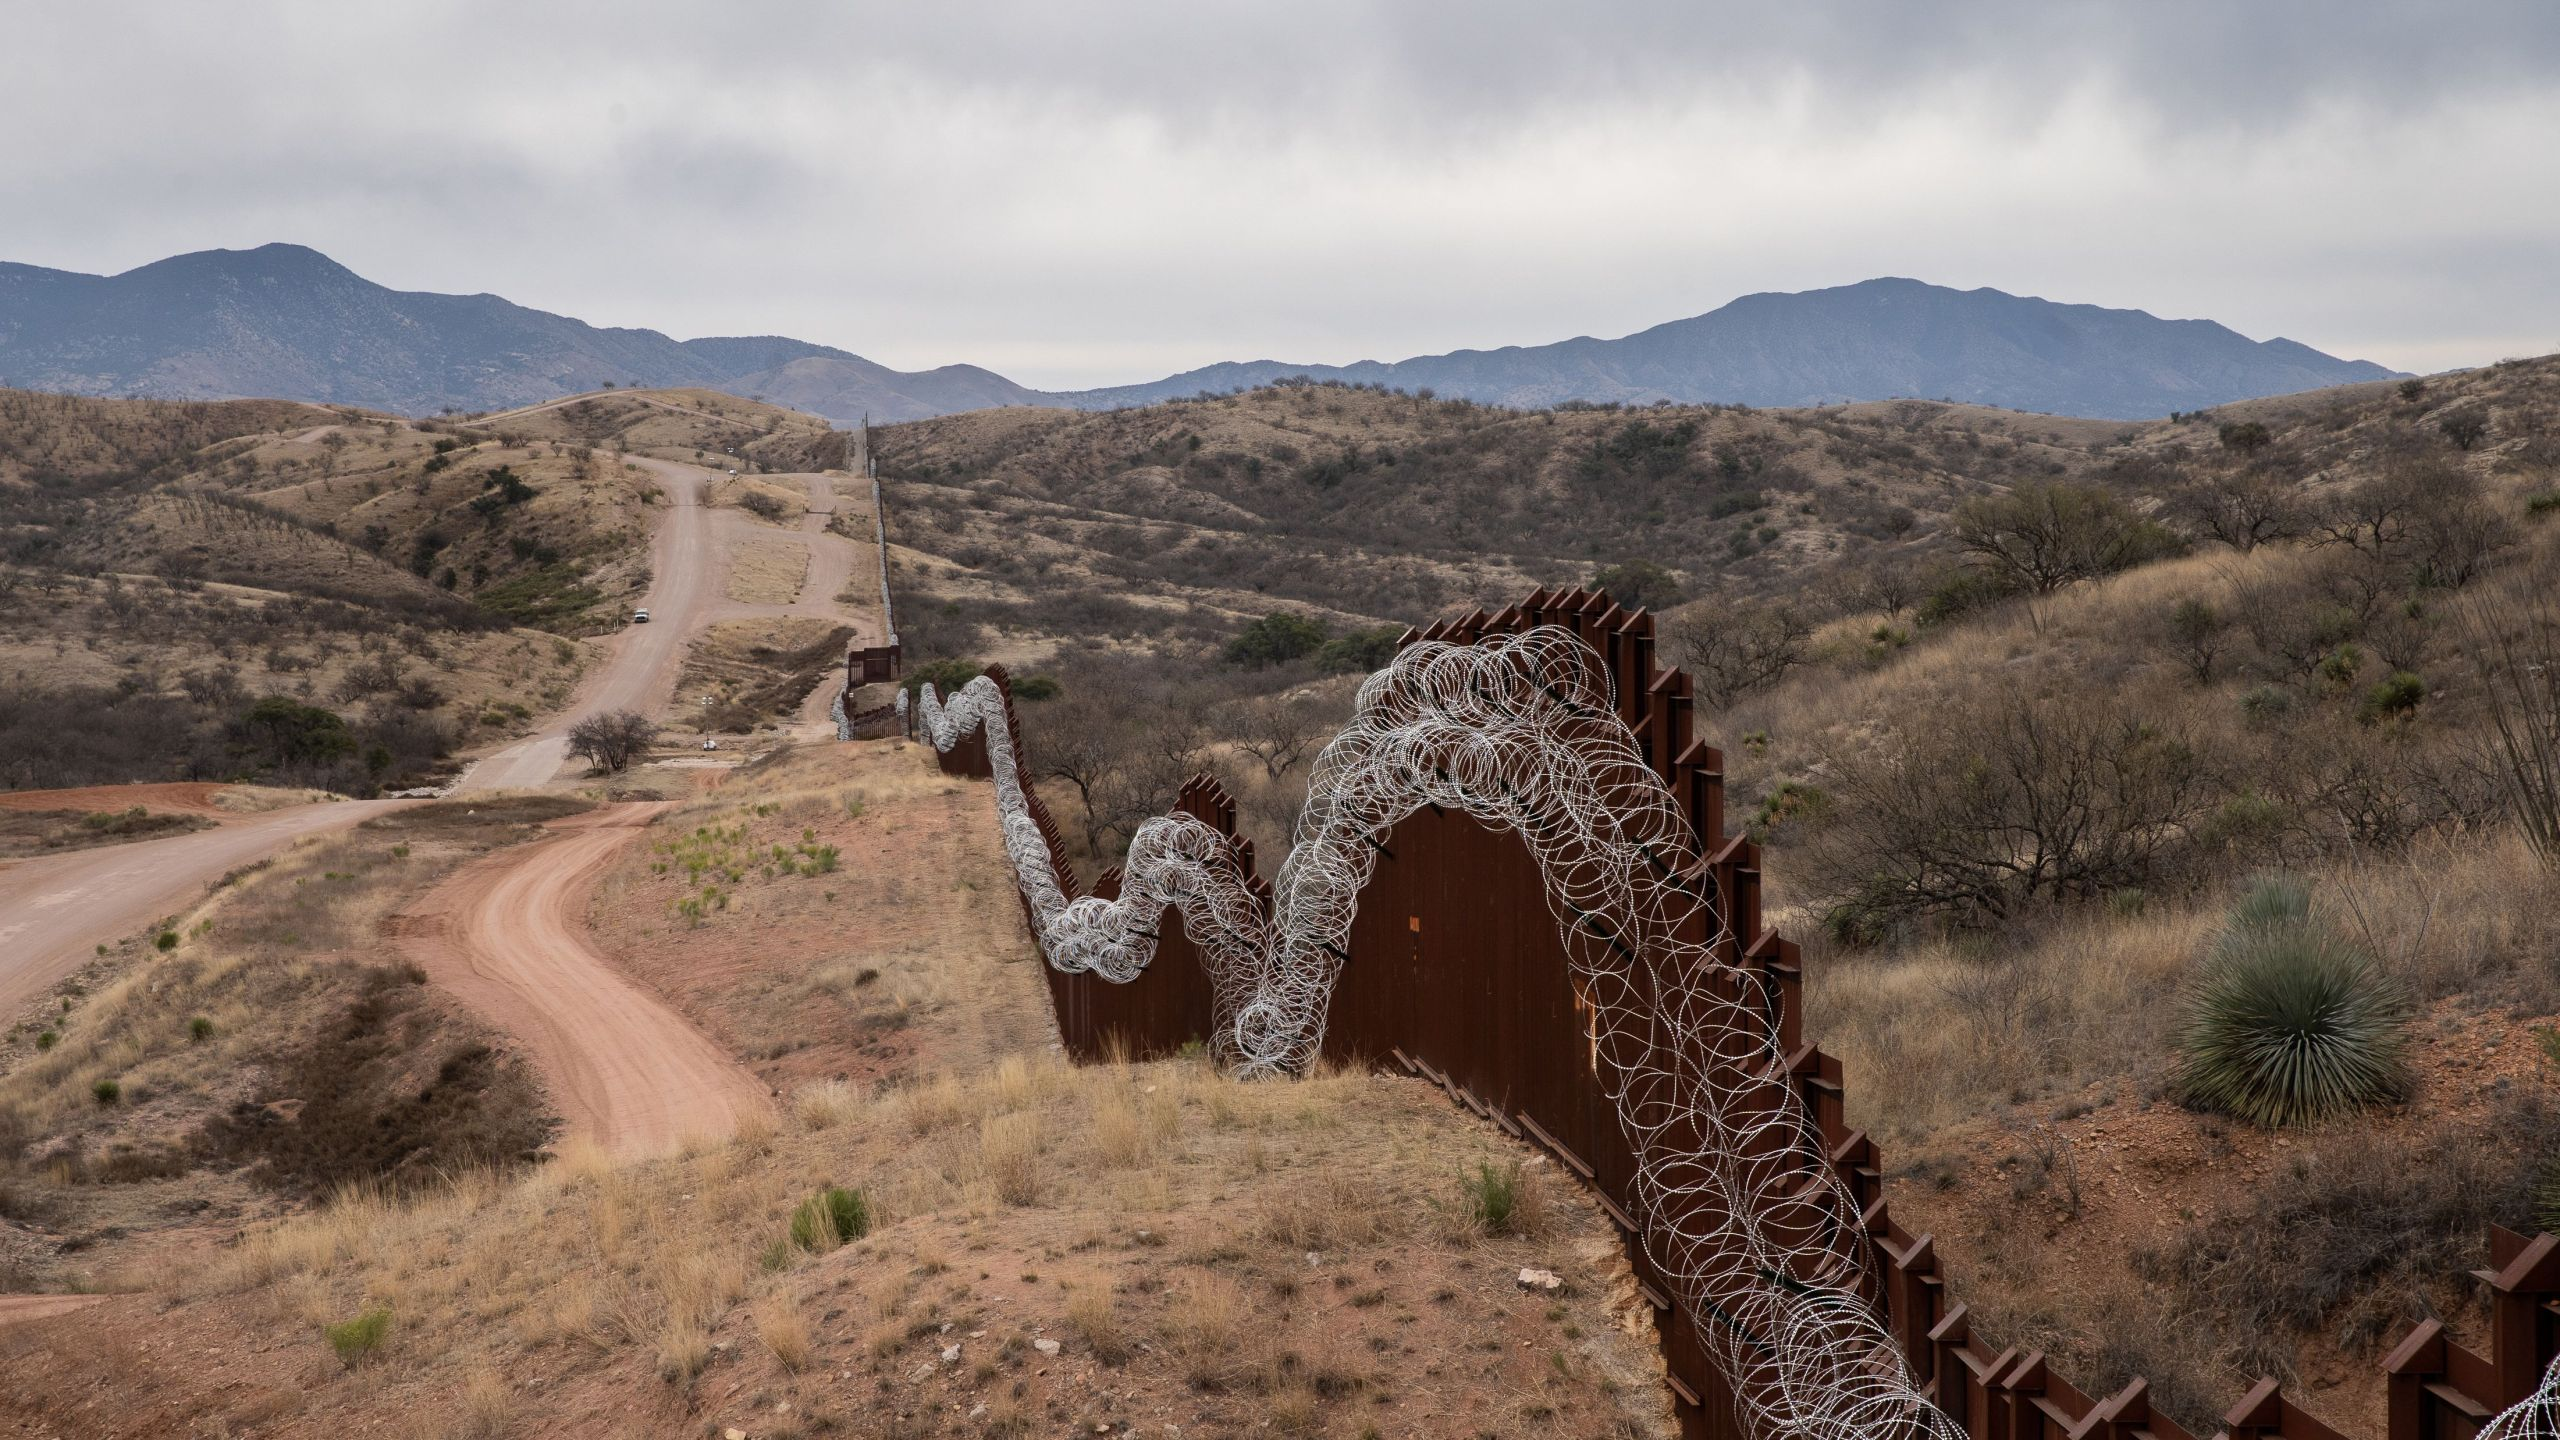 A general view of the U.S. border fence separating the U.S. and Mexico at the outskirts of Nogales, Arizona, on Feb. 9, 2019. (Credit: Ariana Drehsler / AFP / Getty Images)